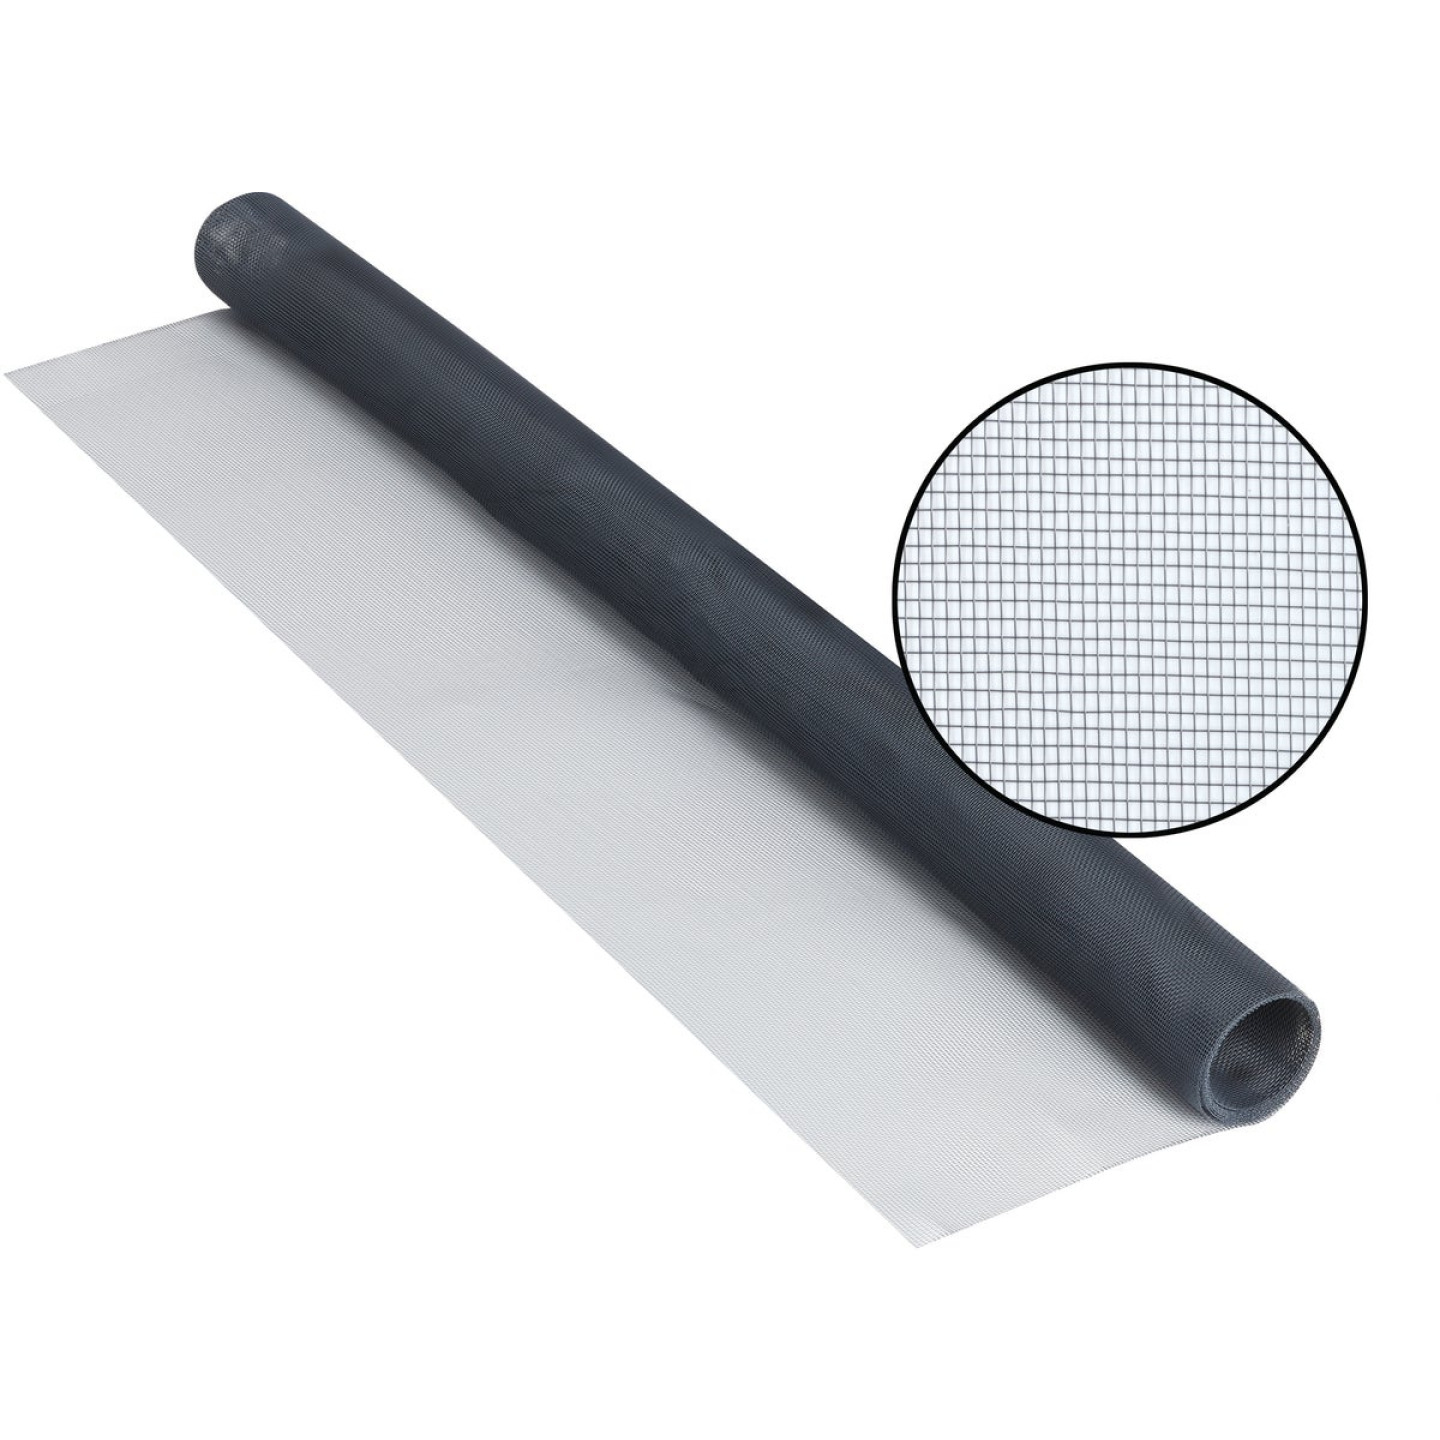 Phifer 24 In. x 84 In. Charcoal Aluminum Screen Ready Rolls Image 1